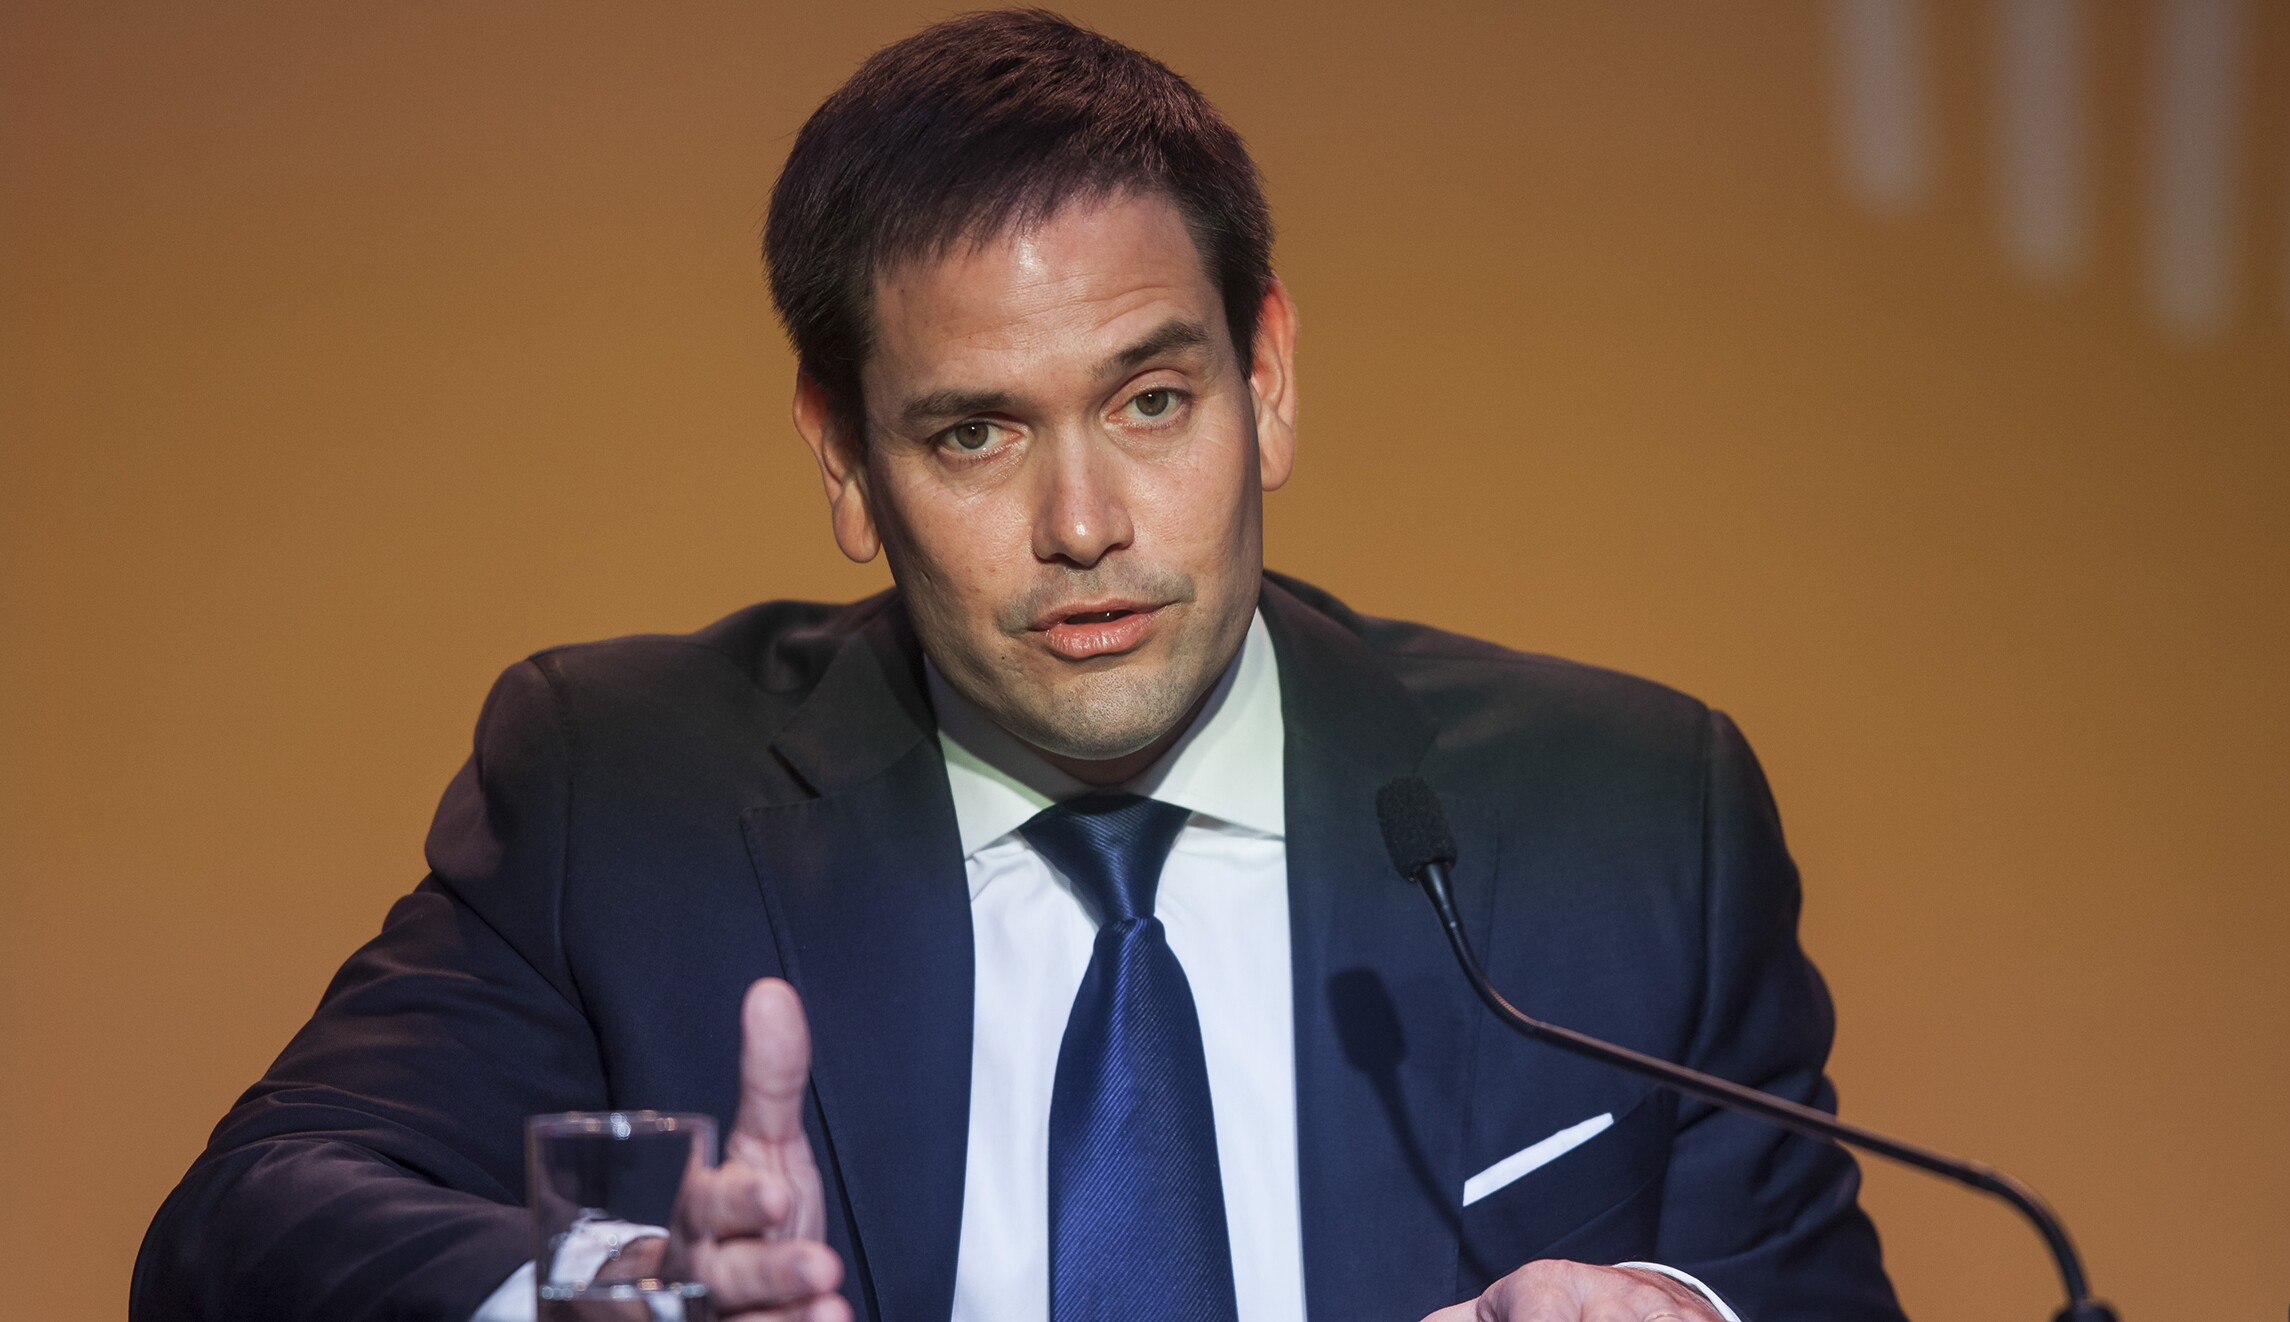 Marco Rubio Wife, Children, Net Worth, Age, Wiki, Bio, Nationality, Family